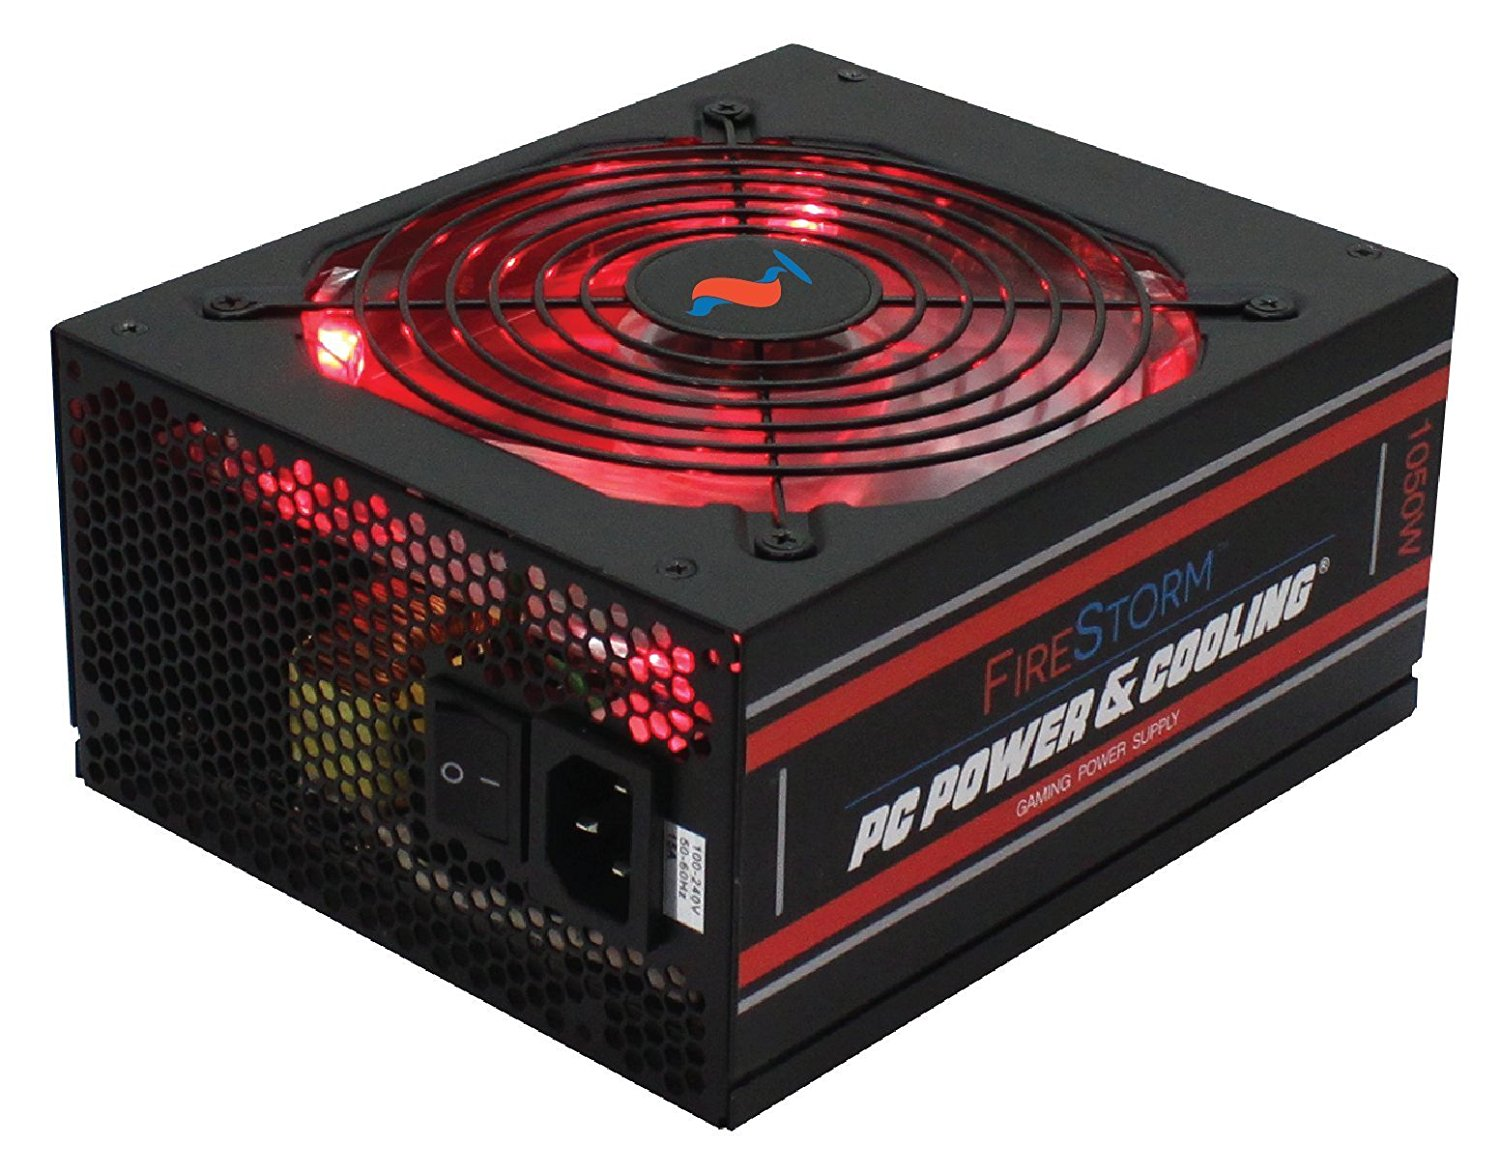 PC Power & Cooling FireStorm Gaming Series 1050 Watt (1050W) 80+ Gold Fully-Modular Active PFC Performance Grade ATX PC Power Supply 5 Year Warranty FPS1050-A4M00